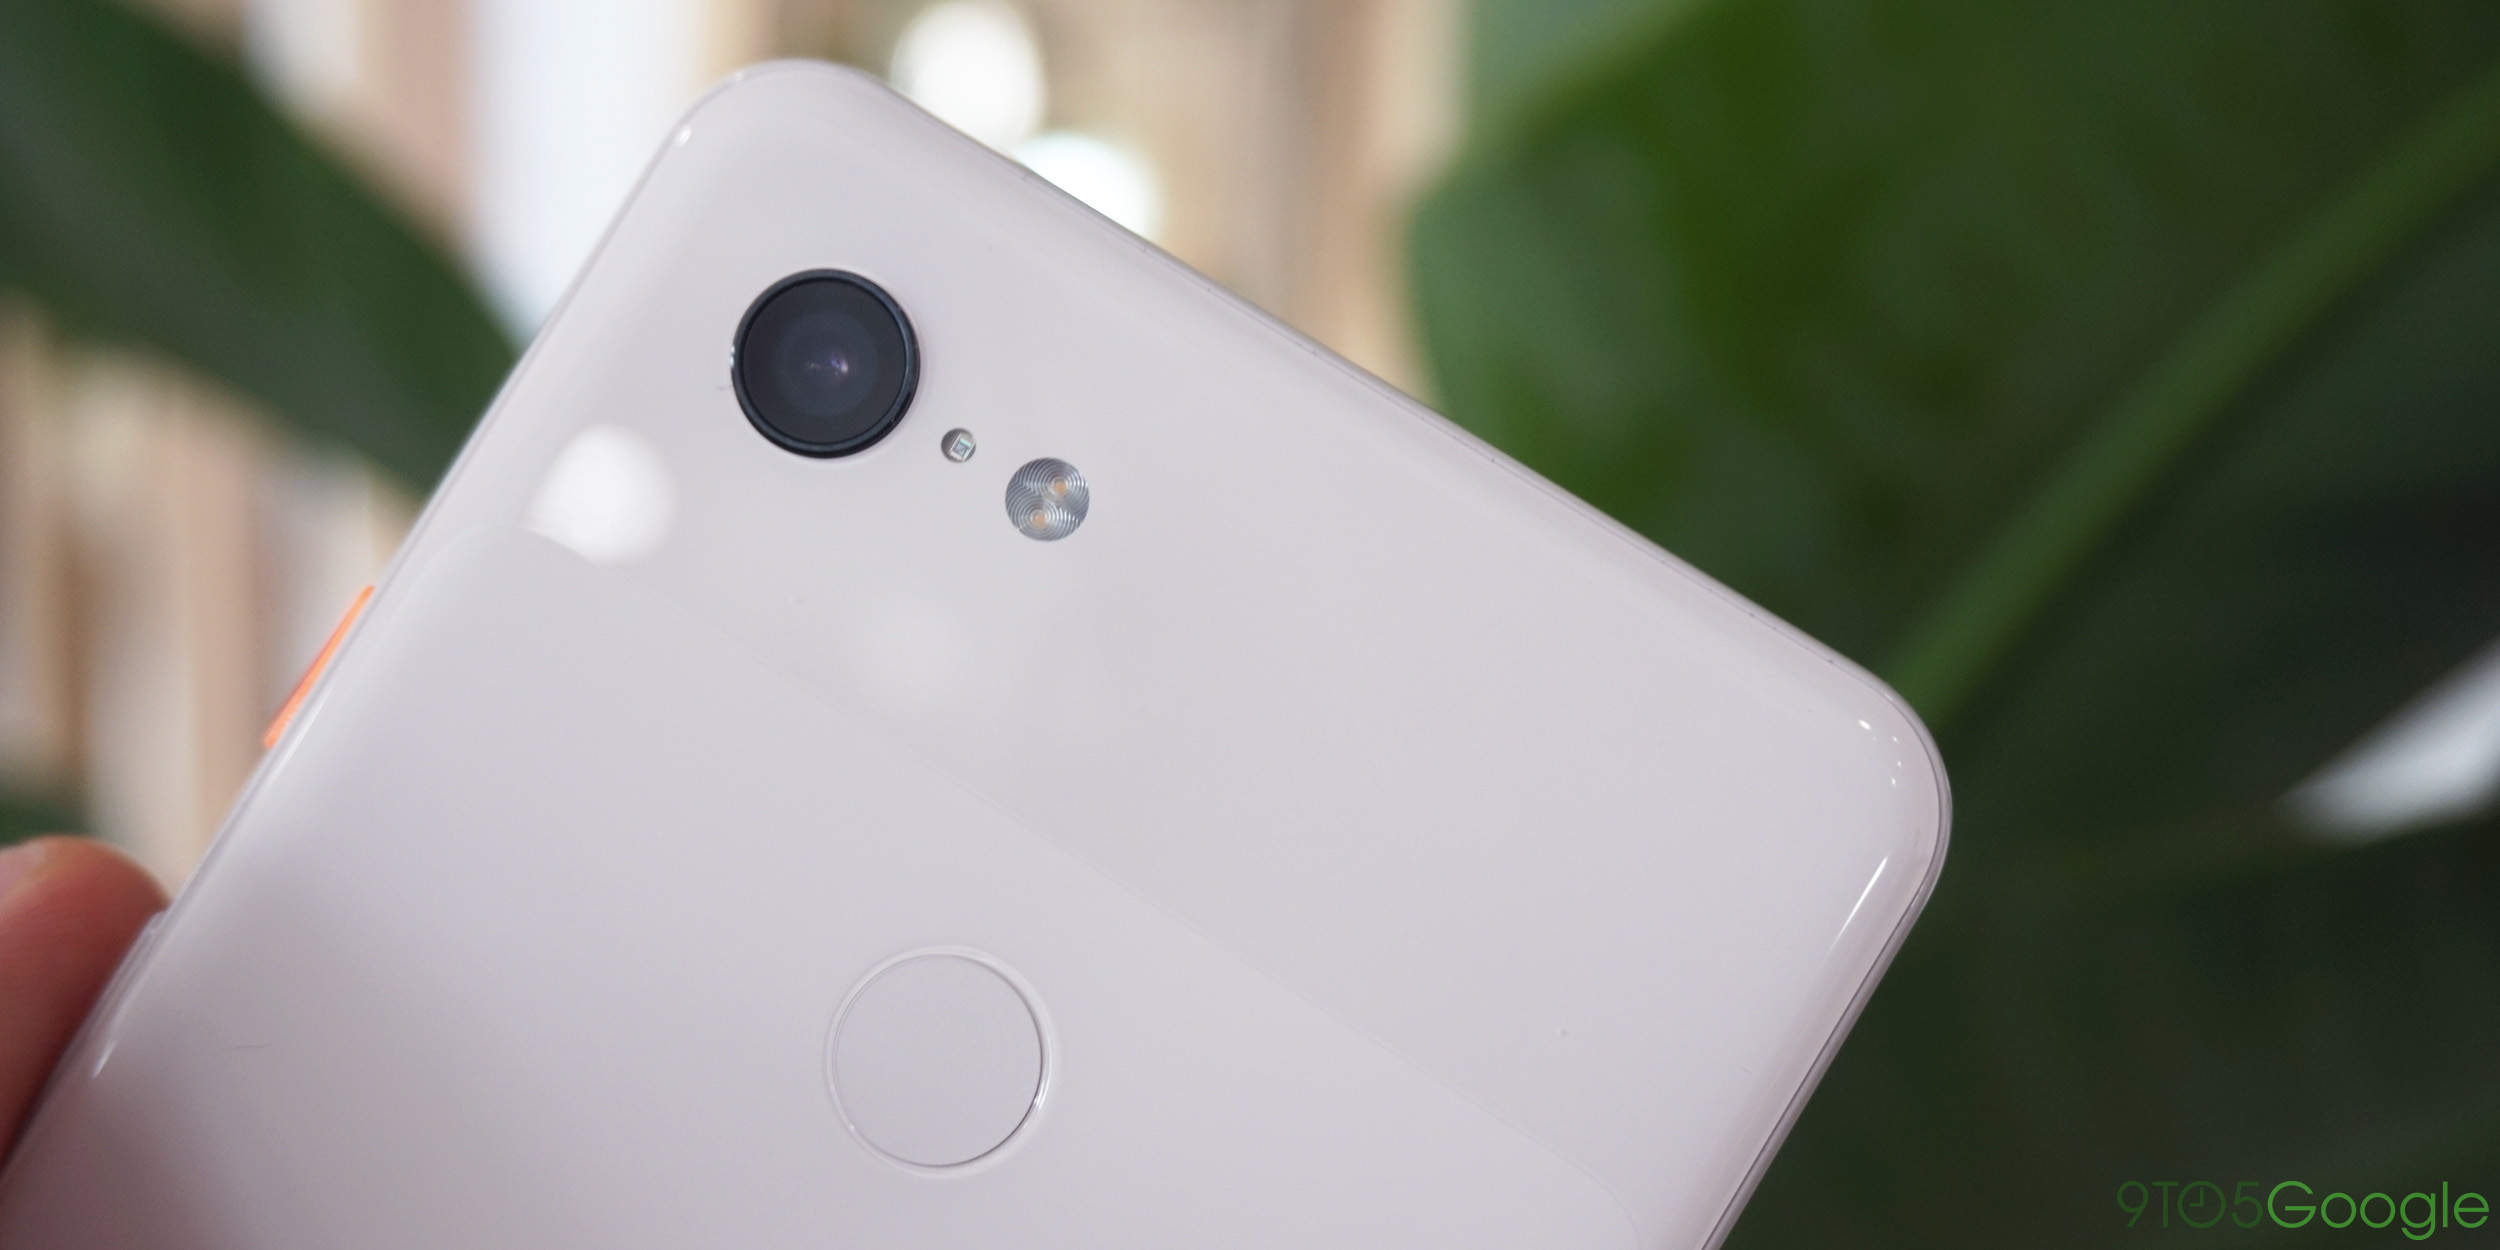 google pixel 3 top shot saves photos in reduced resolution but keeps subject quality